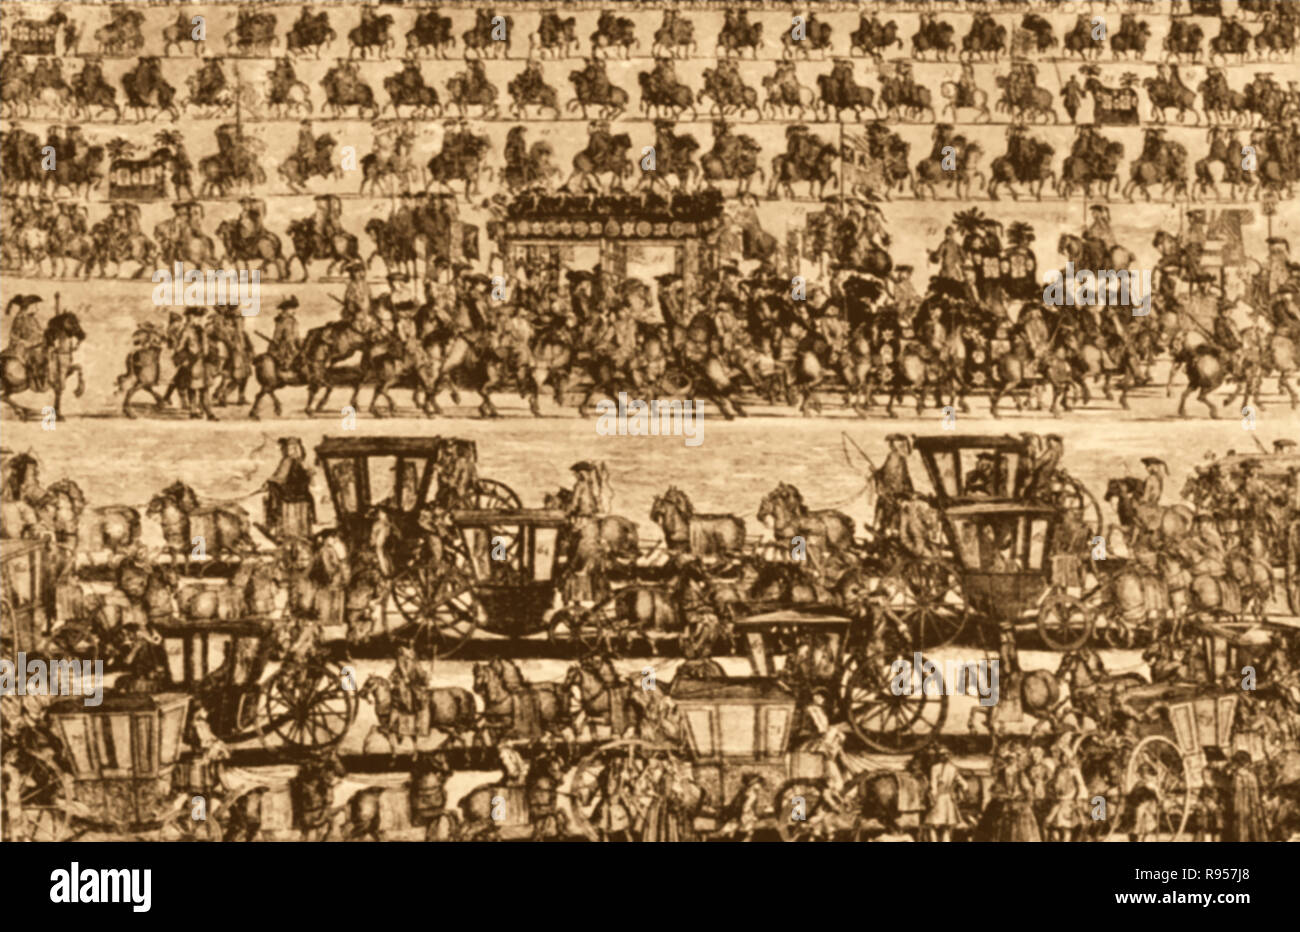 An old print showing the funeral procession in 1772 of  the Duke of Marlborough 1650-1722 - ( General John Churchill, 1st Duke of Marlborough, 1st Prince of Mindelheim, 1st Count of Nellenburg, Prince of the Holy Roman Empire, ) - Stock Image